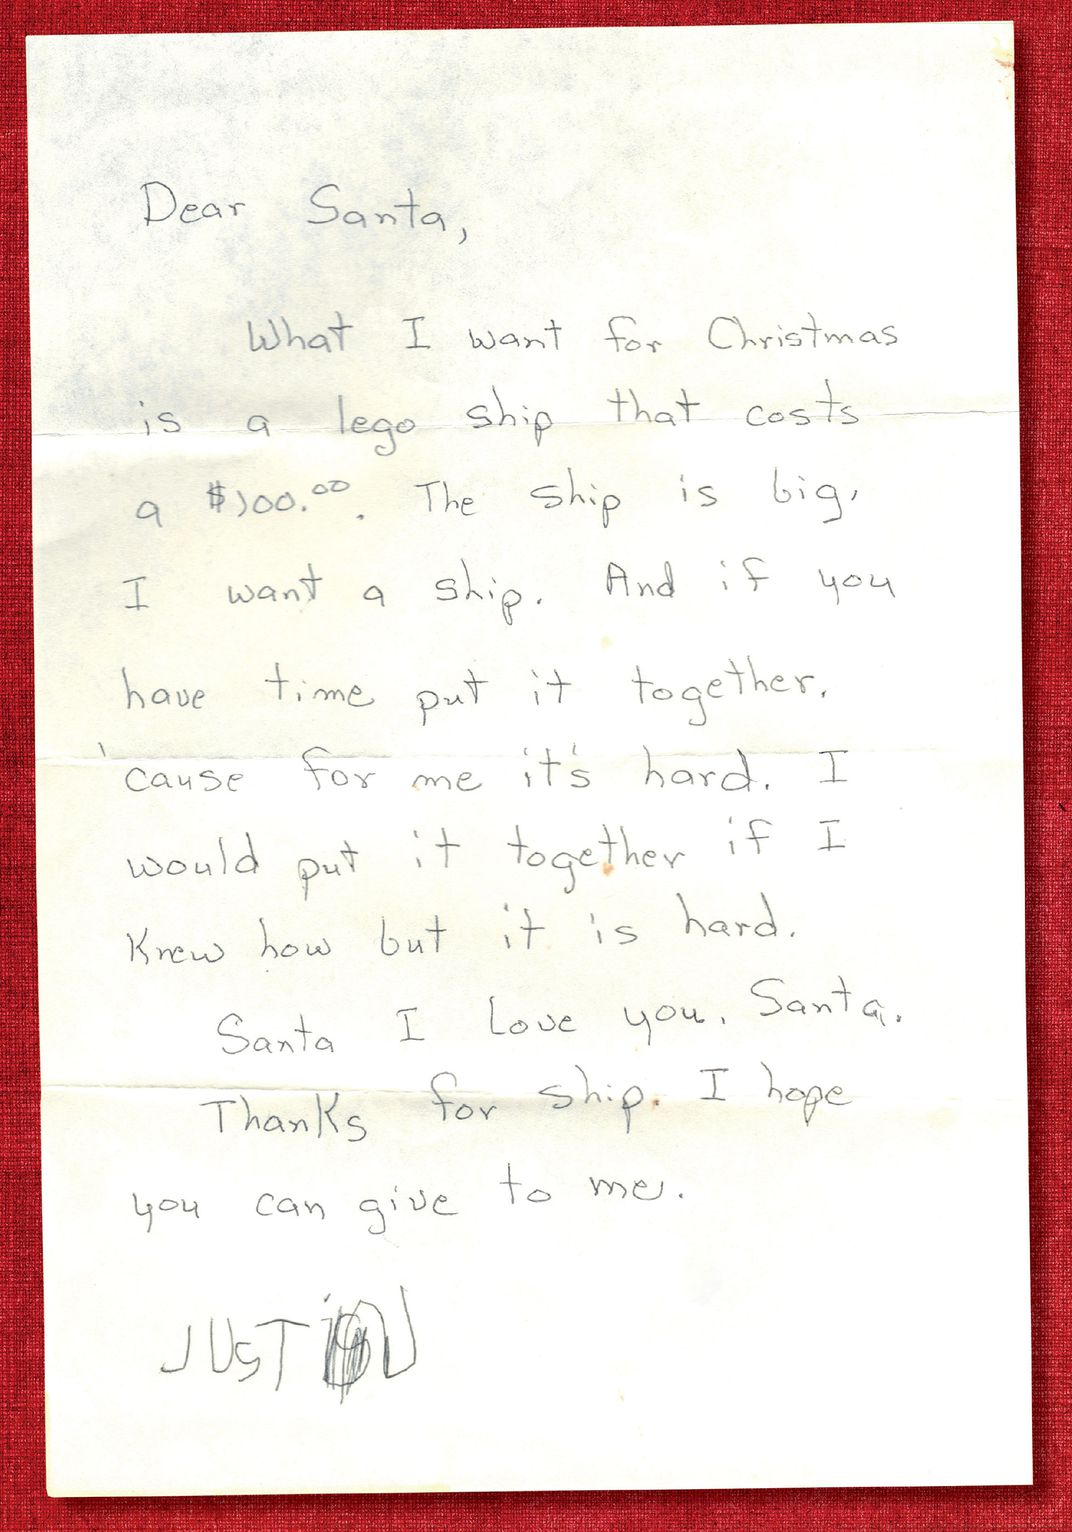 A brief history of sending a letter to santa arts culture a letter to santa from the 1980s santa claus museum and village spiritdancerdesigns Gallery